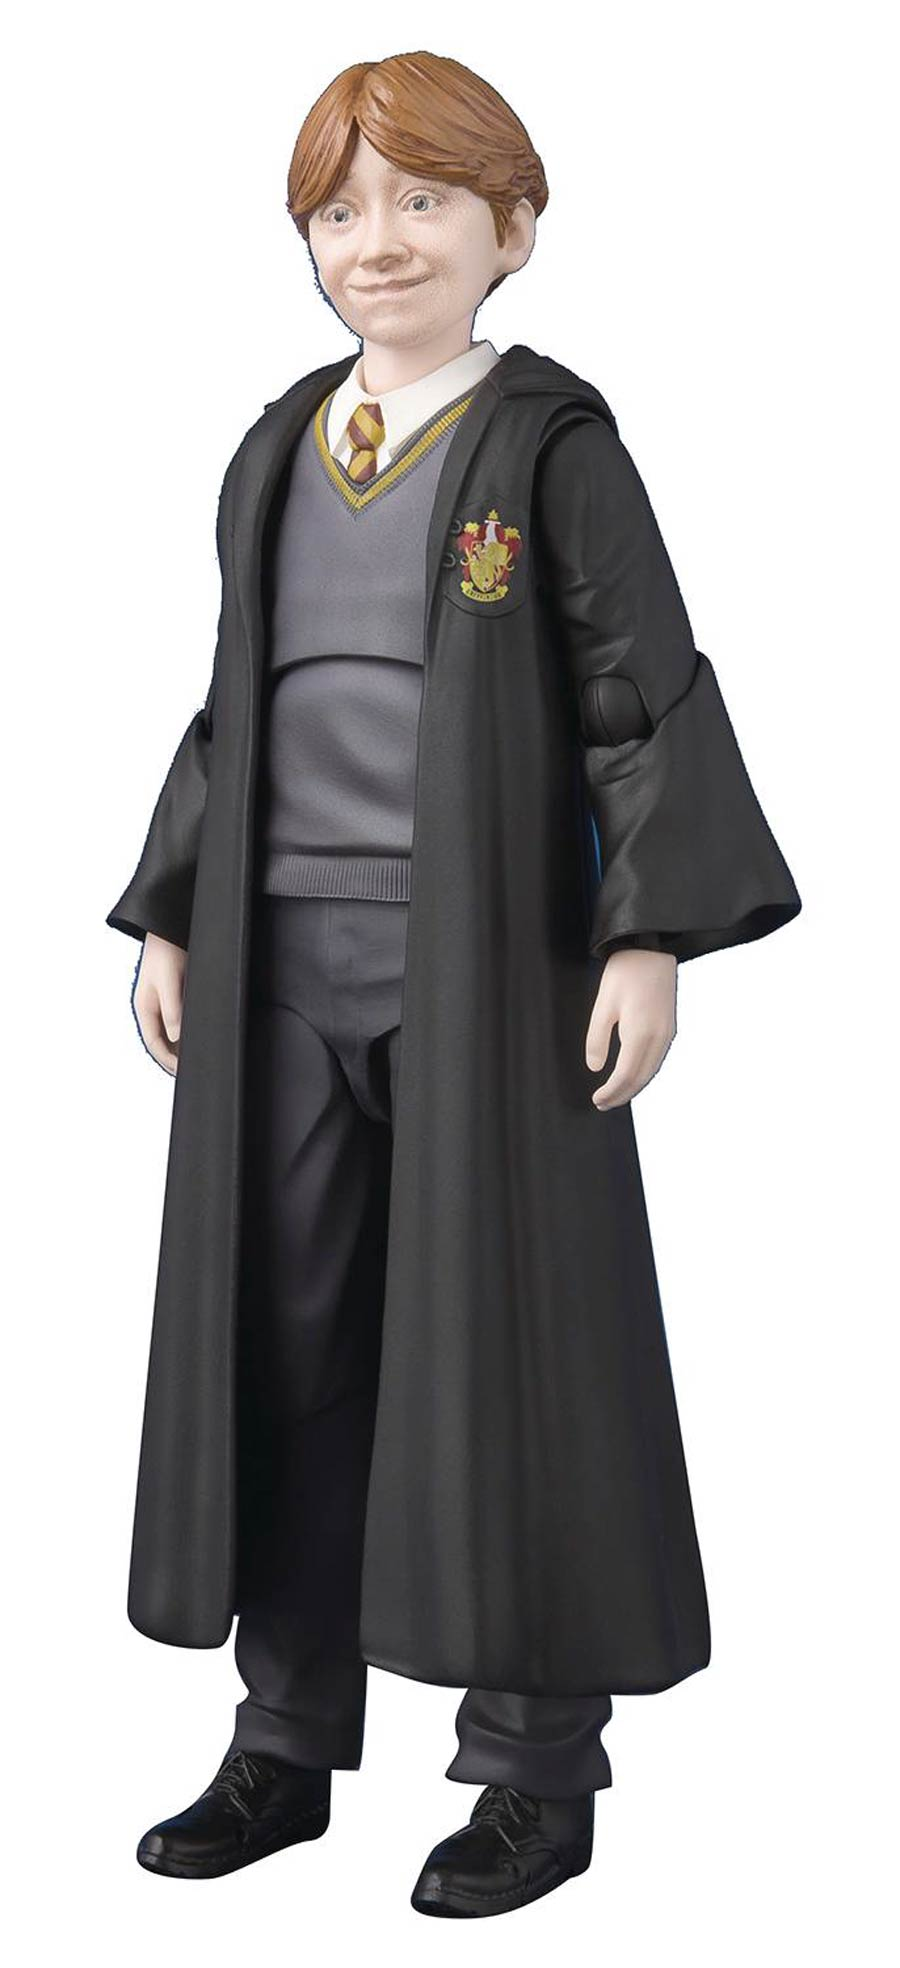 Harry Potter And The Sorcerers Stone S. H. Figuarts - Ron Weasley Action Figure